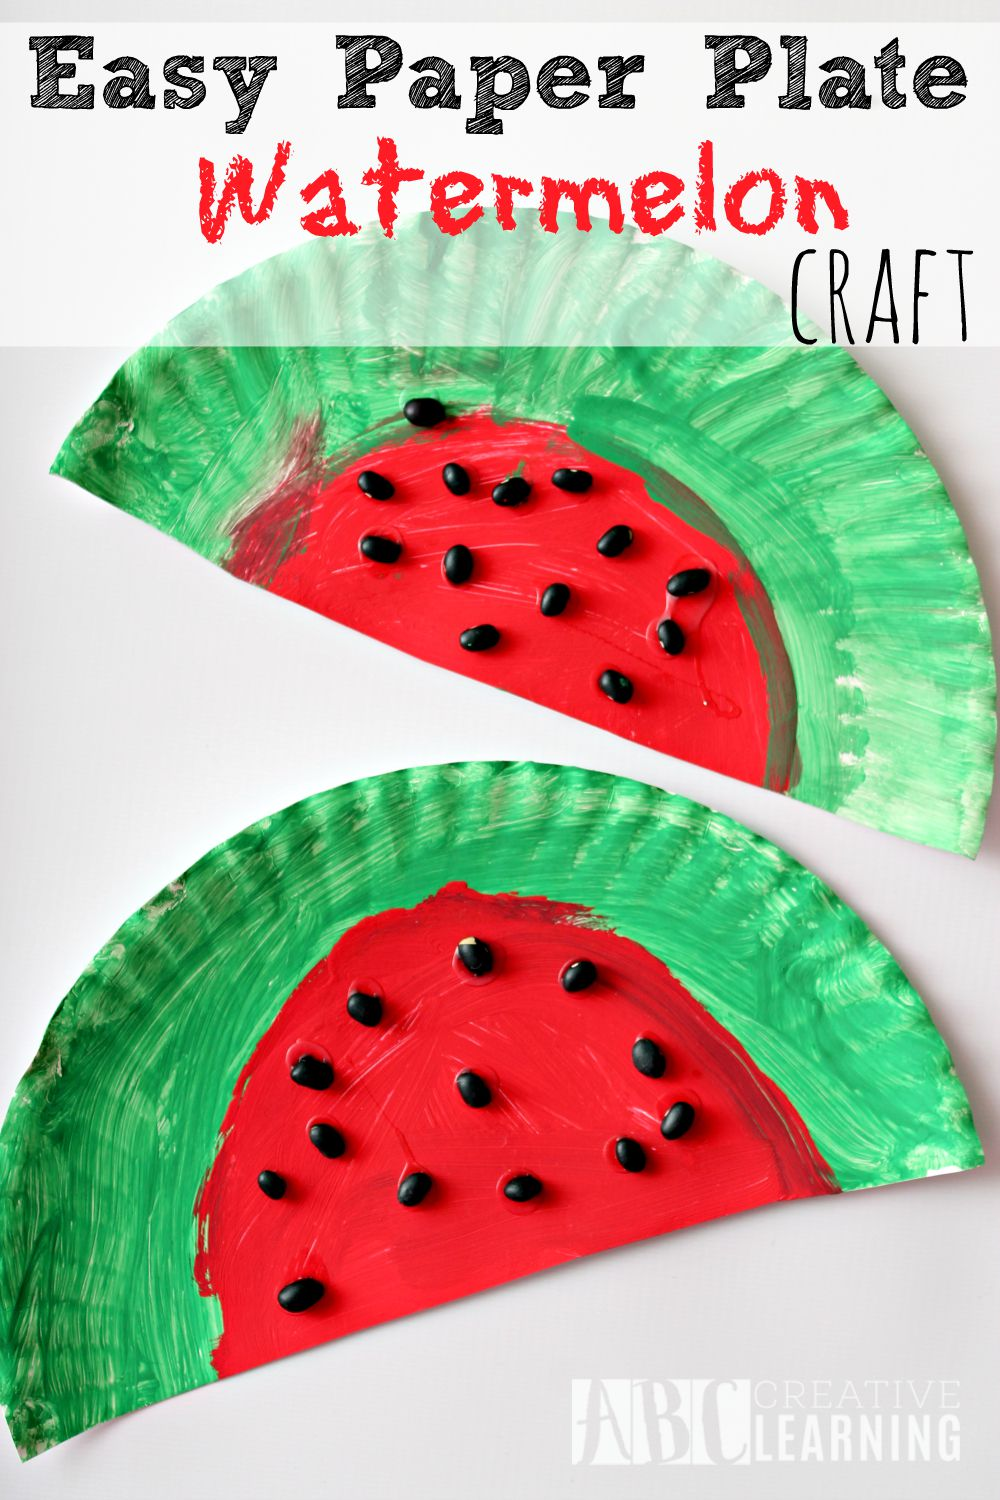 Easy Paper Plate Watermelon Craft